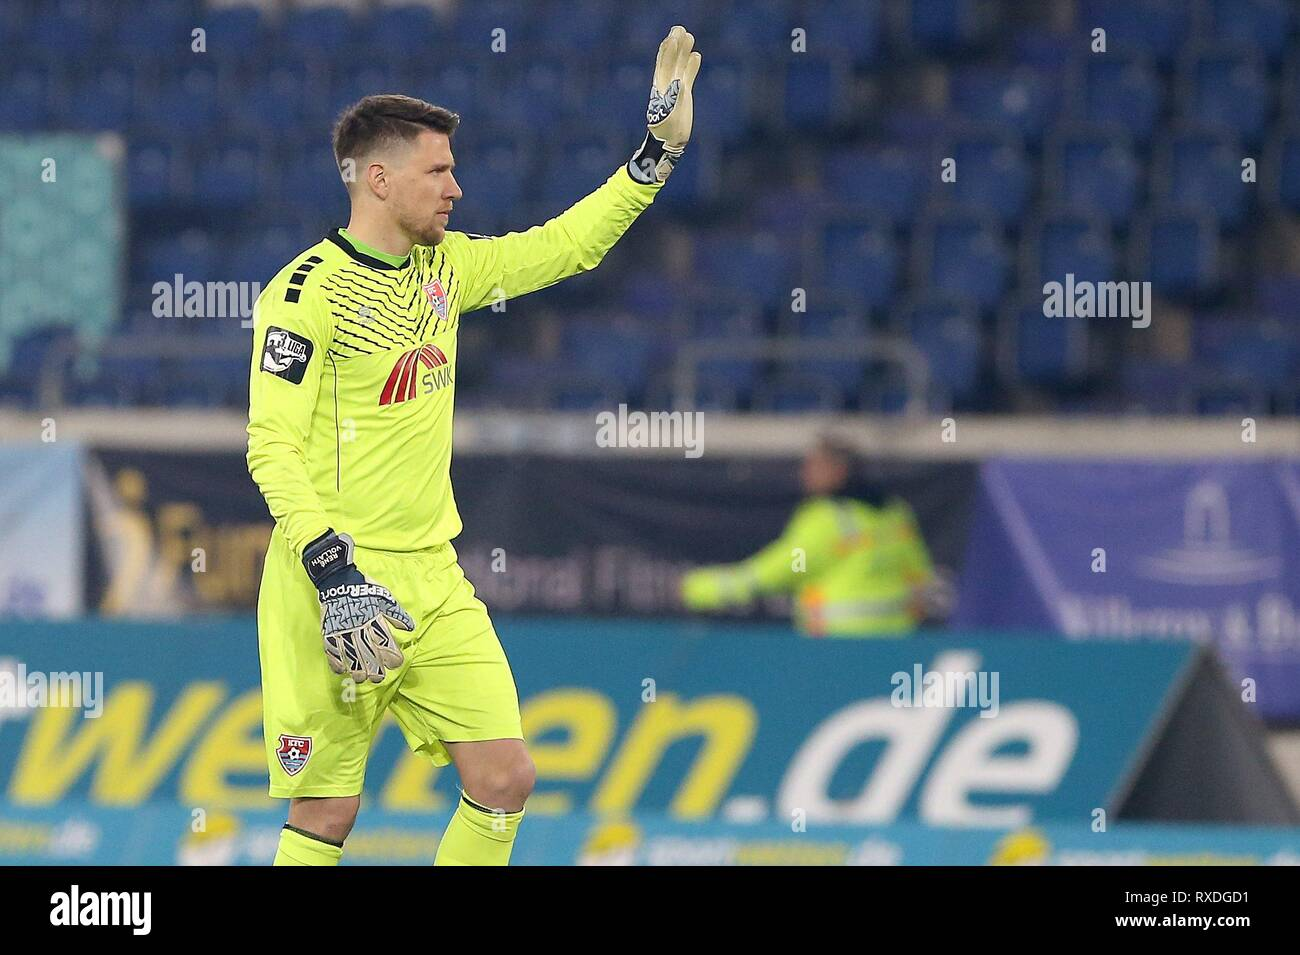 firo: 08.03.2019 Football, 3. Bundesliga, season 2018/2019 KFC Uerdingen 05 - Karlsruher SC goalkeeper Renv © Vollath (# 1, KFC Uerdingen 05) welcomes the fans from Karlsruher SC, for whom he was in goal before Uerdingen. | usage worldwide - Stock Image